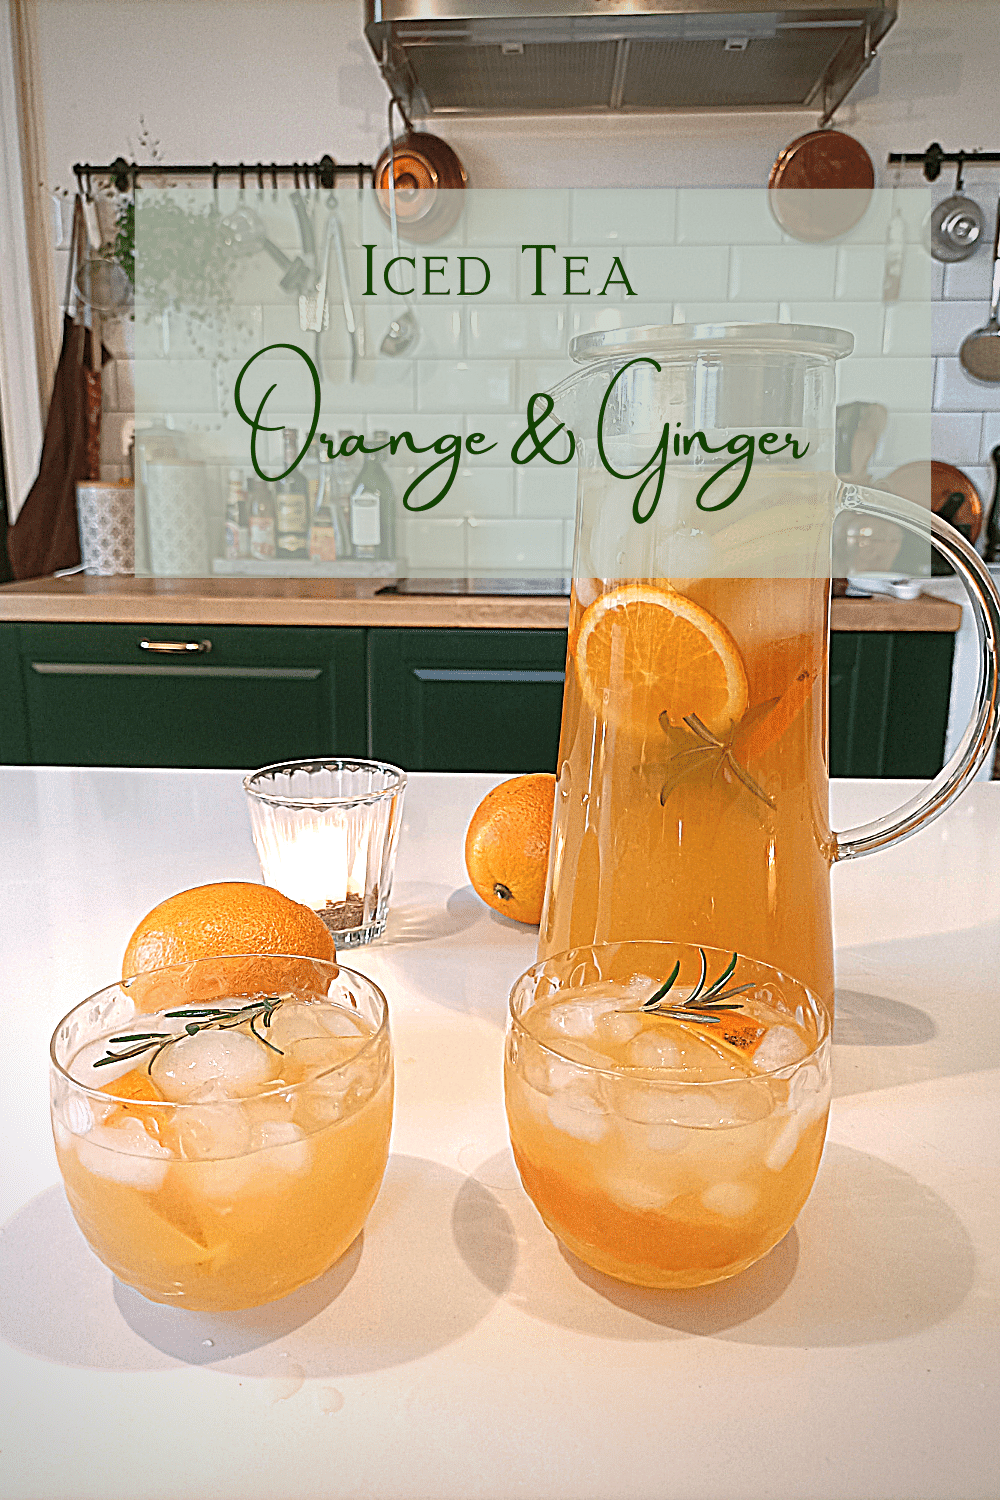 IcedTea With Oranges & Ginger – Non-alcoholic tasty and easy to make